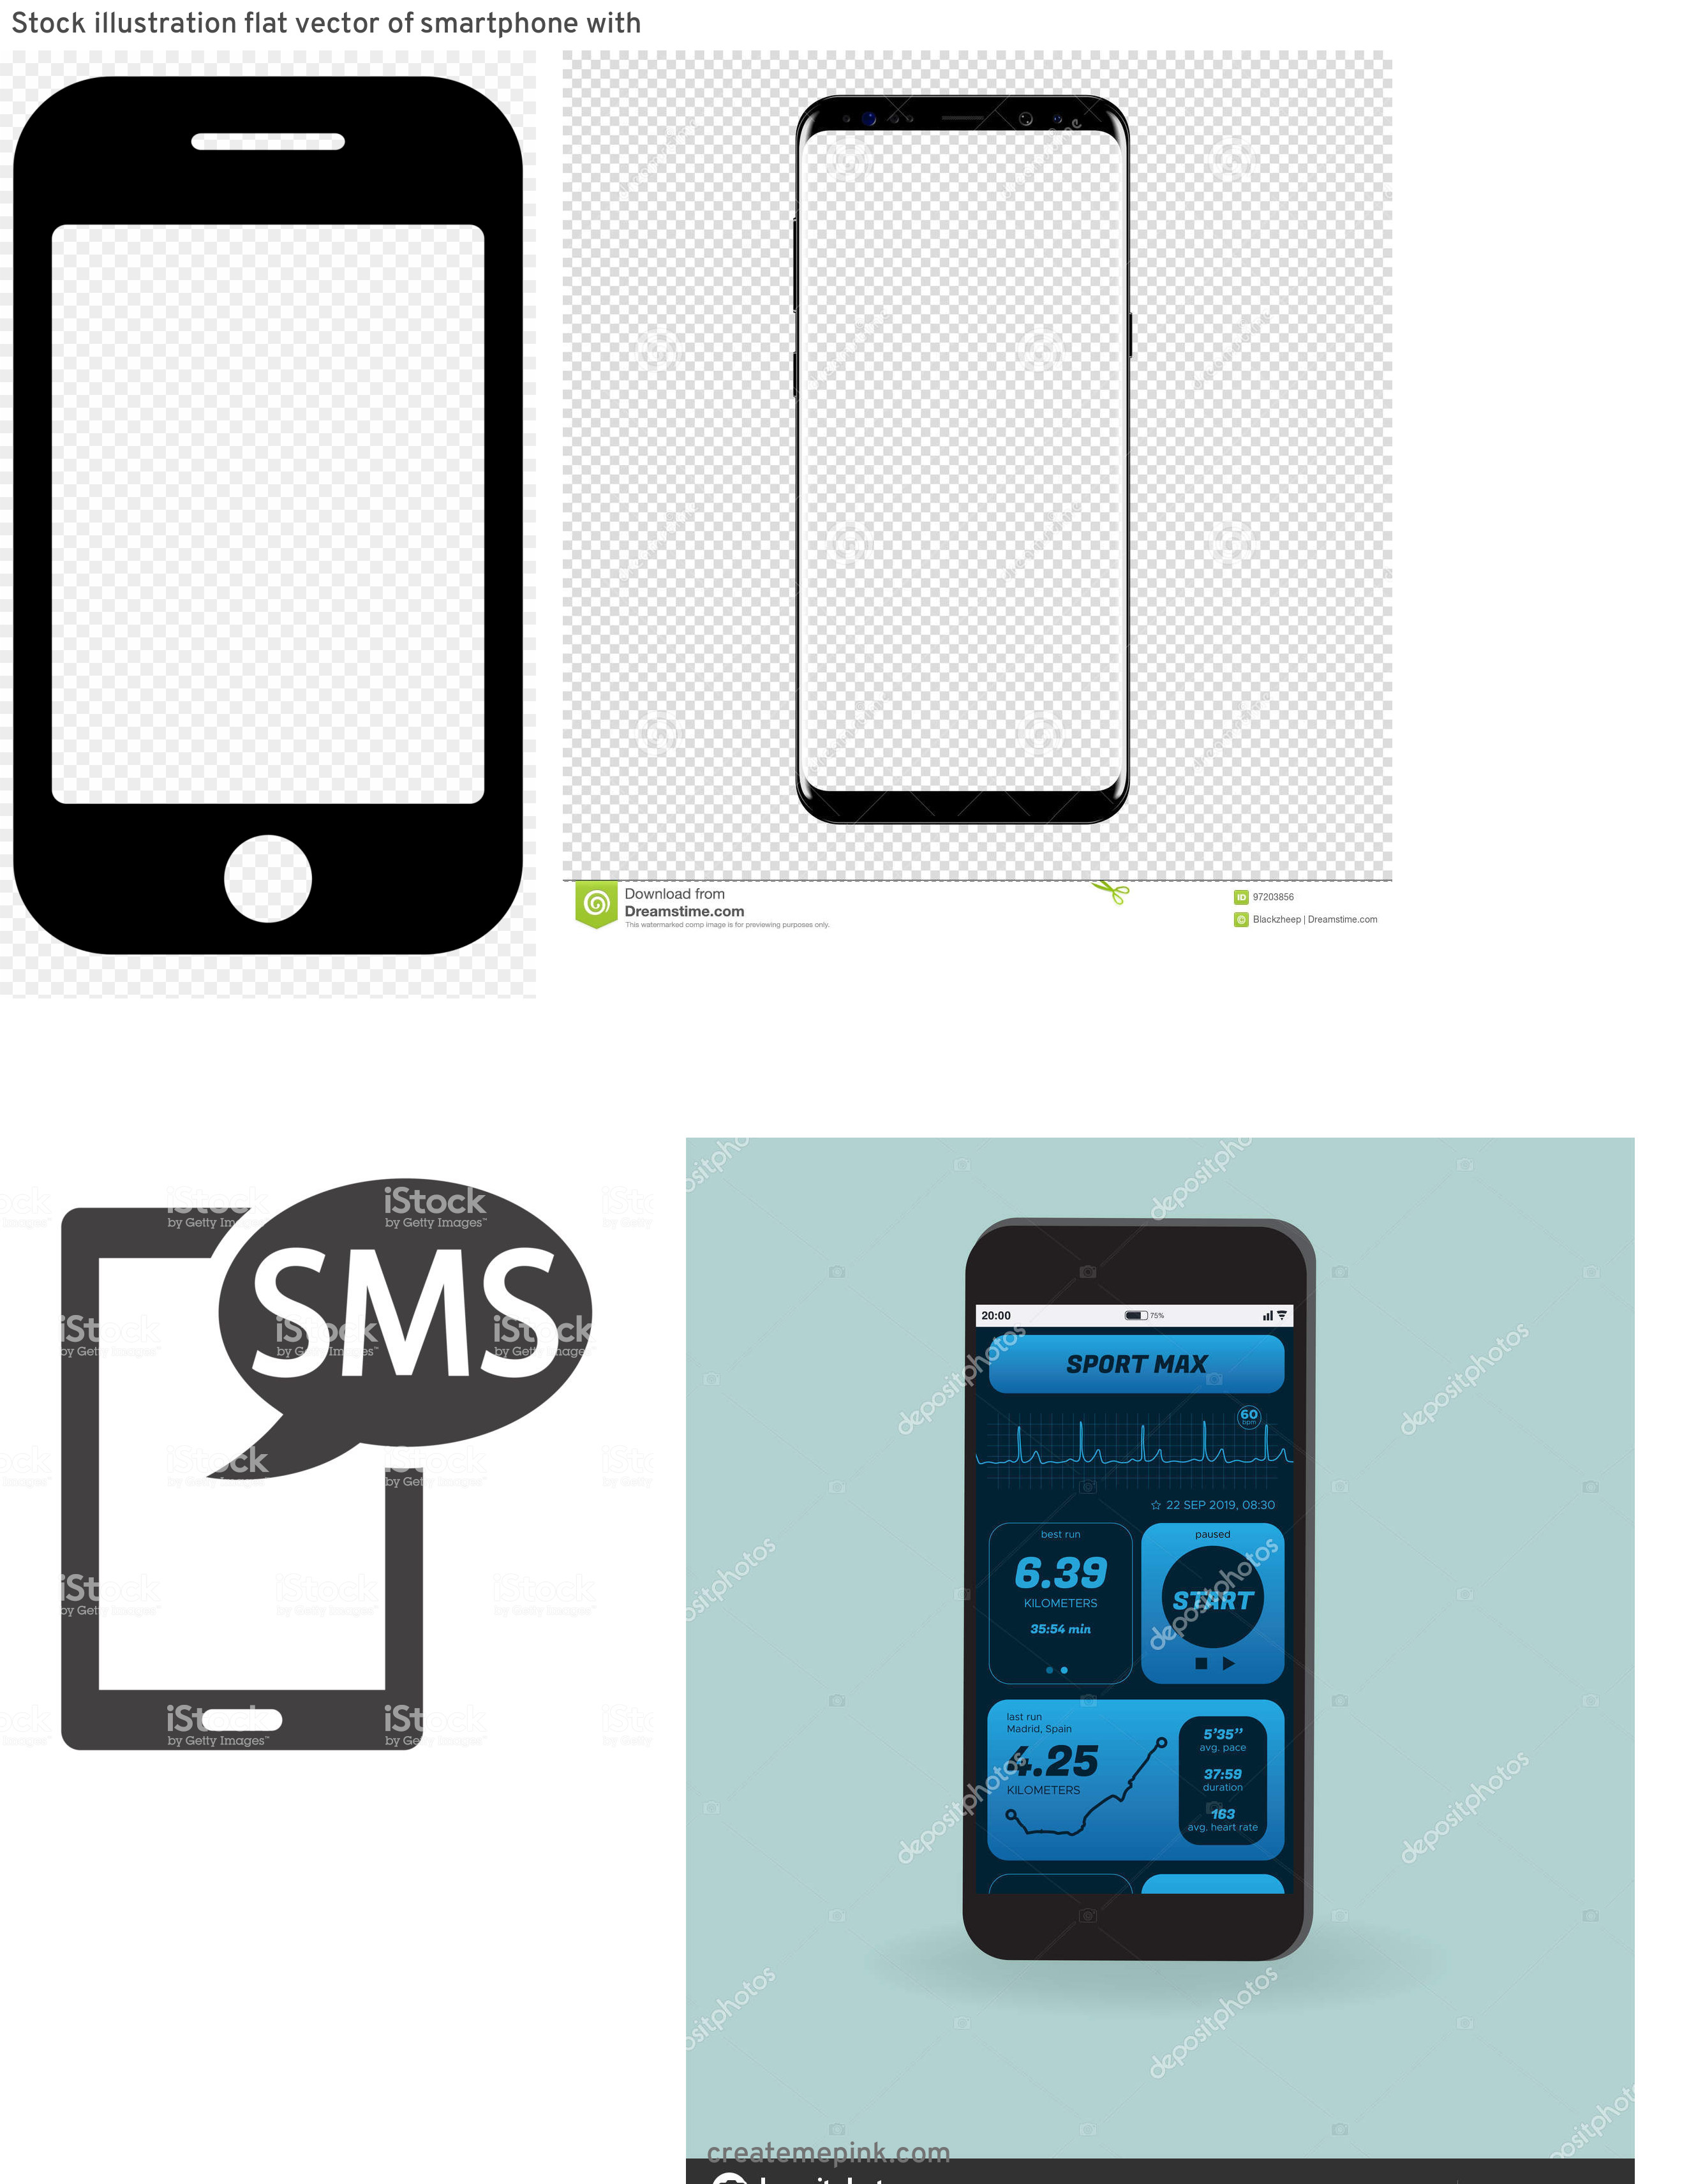 U.S. Cellular Phone Vector: Stock Illustration Flat Vector Of Smartphone With